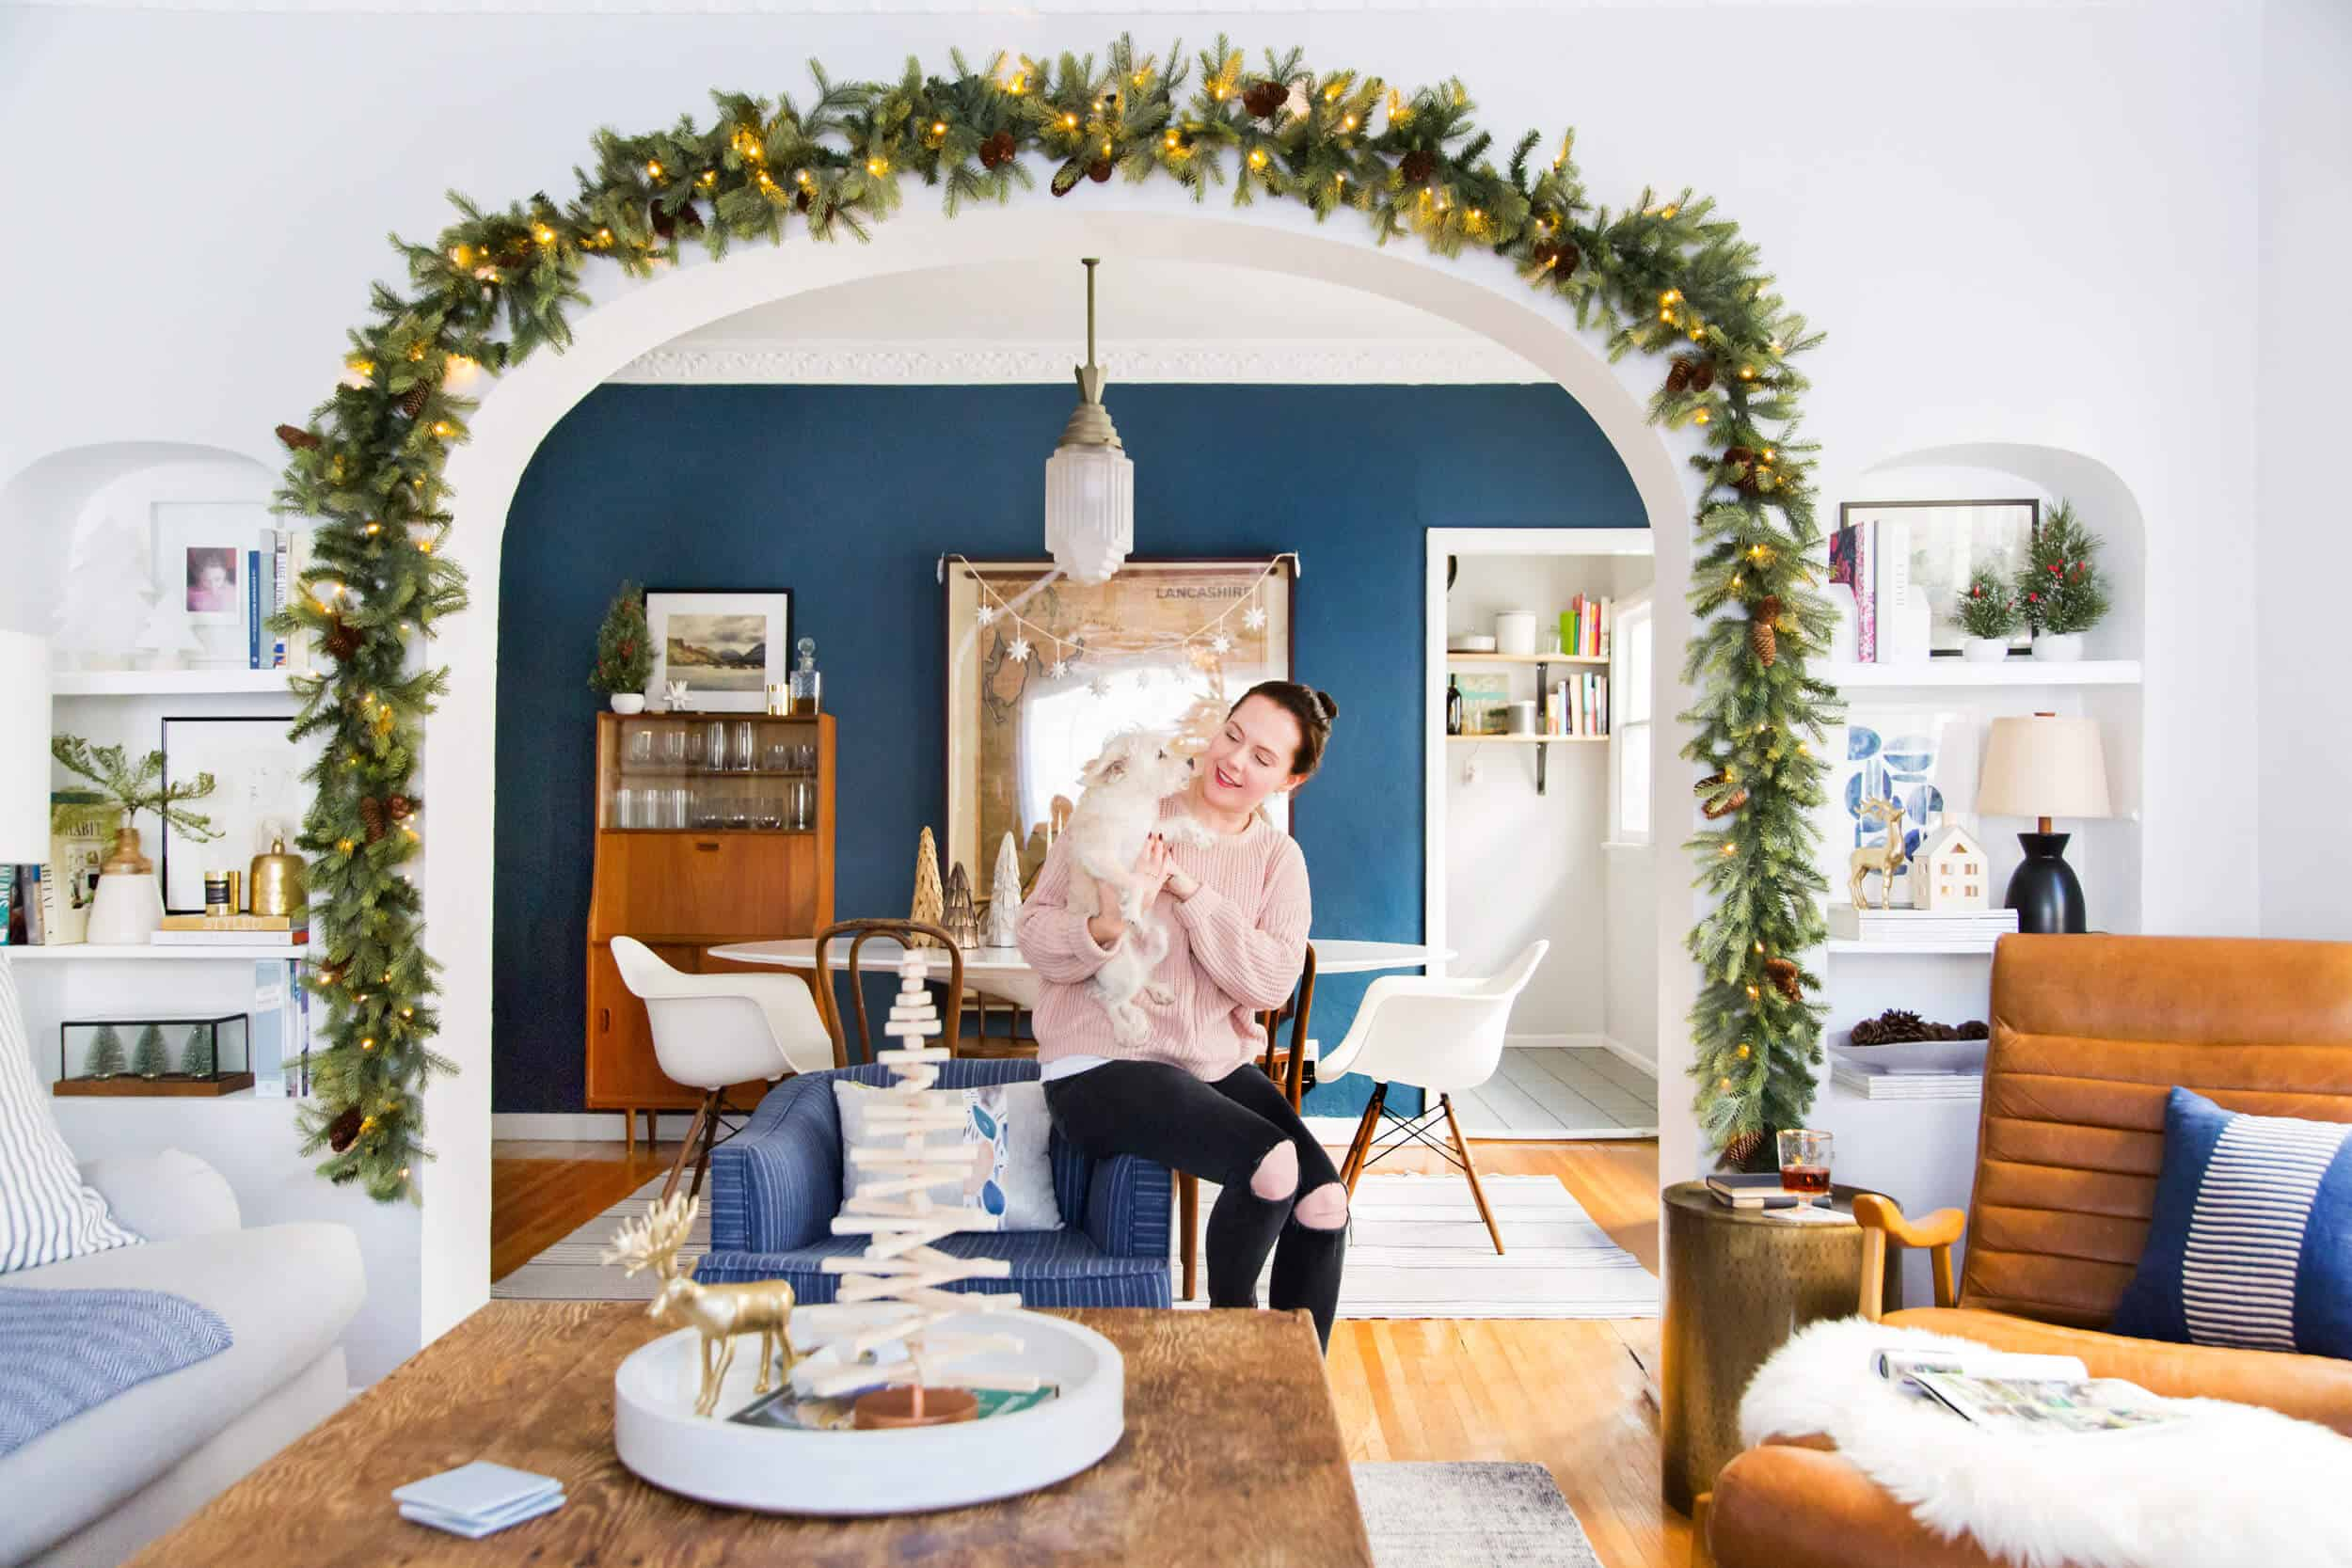 emily-henderson_holiday-decorating_ginny_living-room_dining-room_christmas_white-neutral_cozy-cottage_13